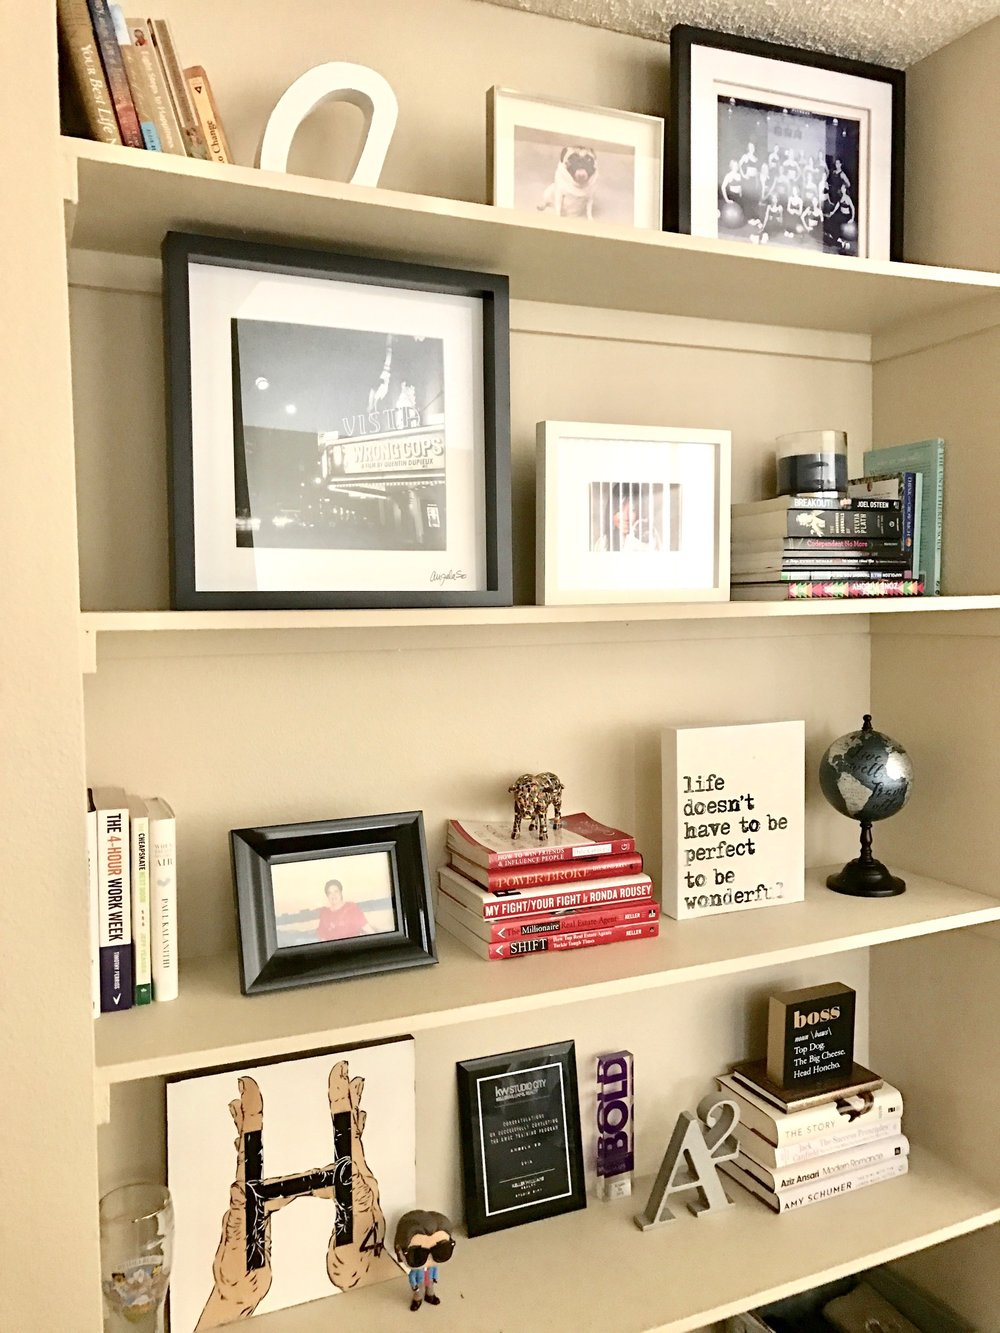 Restyled book shelves